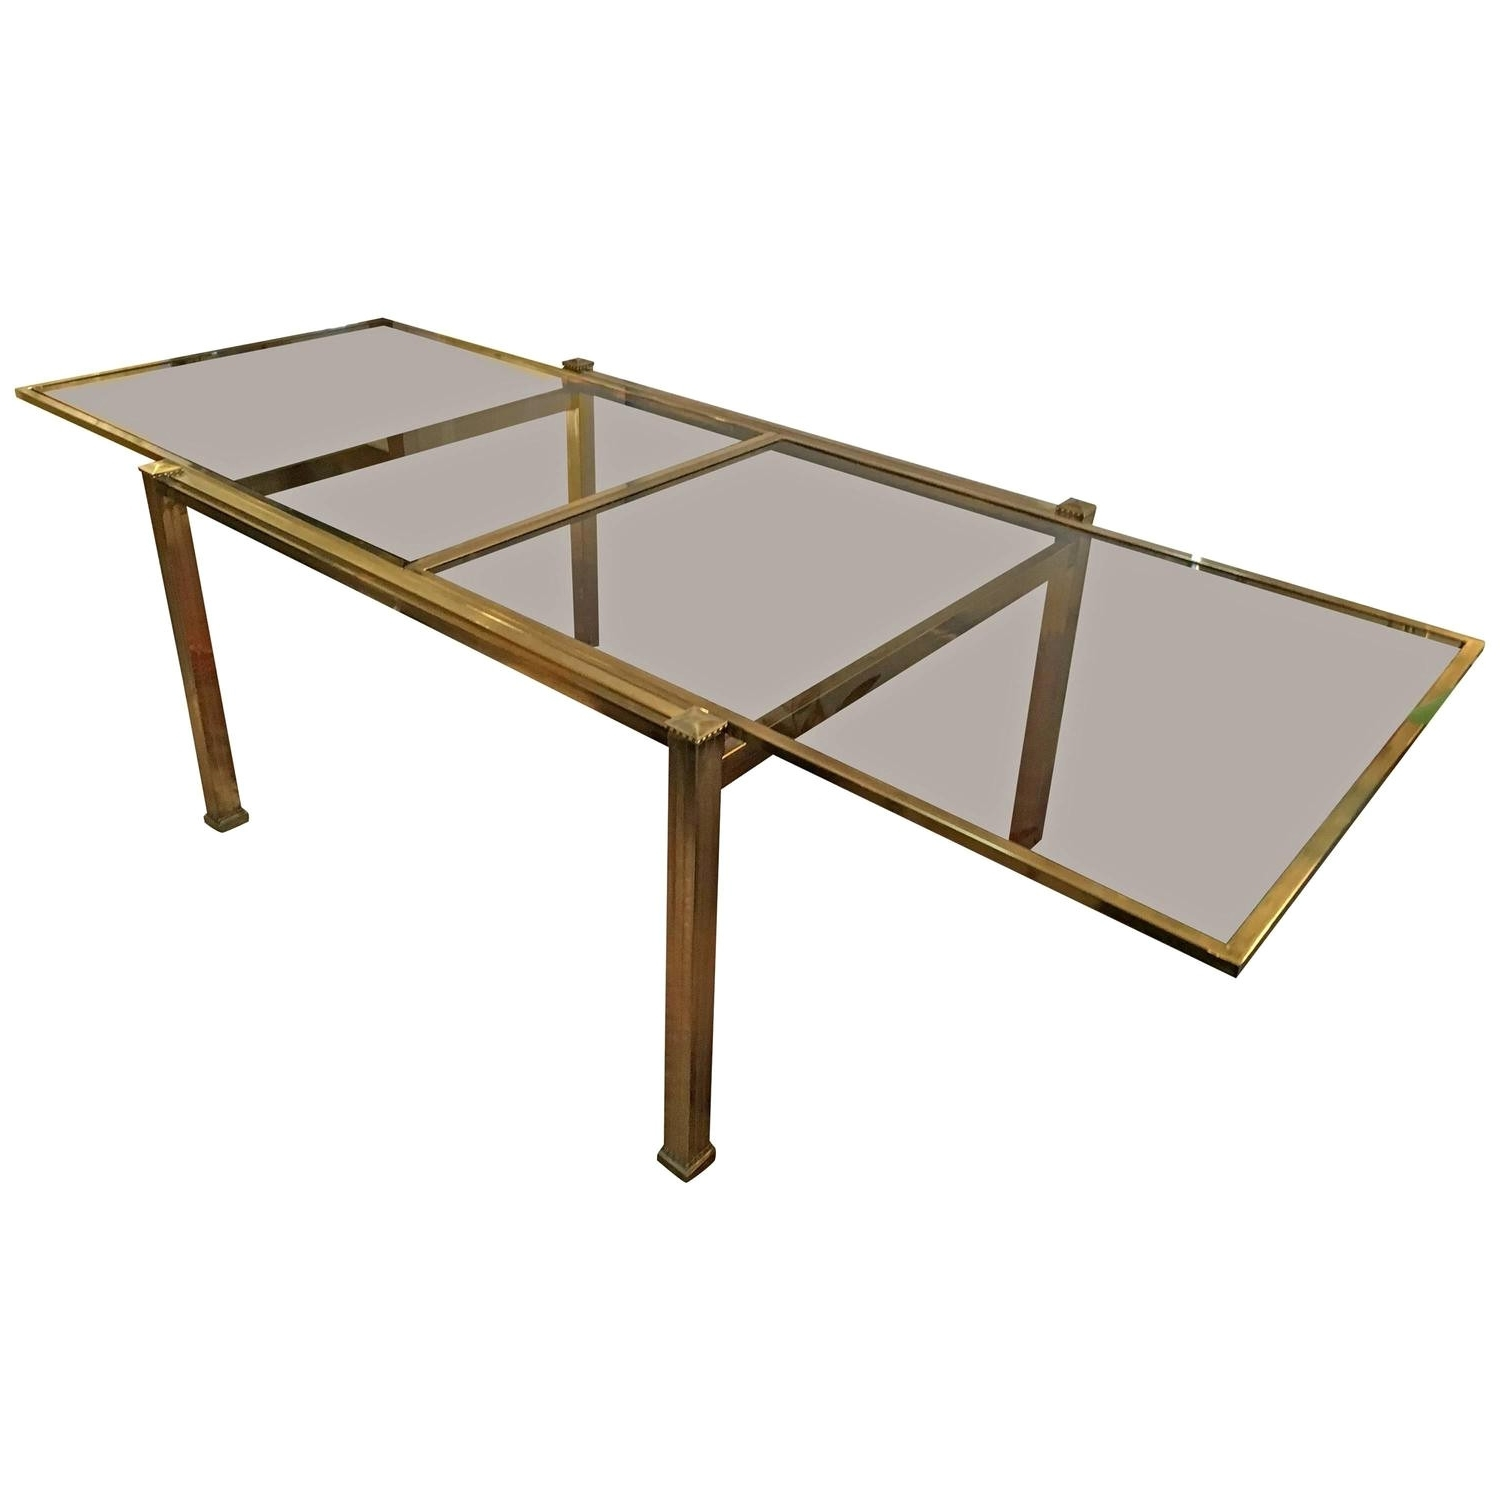 Jaxon Round Extension Dining Tables Inside Newest Ideal Mastercraft Brass And Smoked Glass Extension Dining Table At (Gallery 15 of 25)